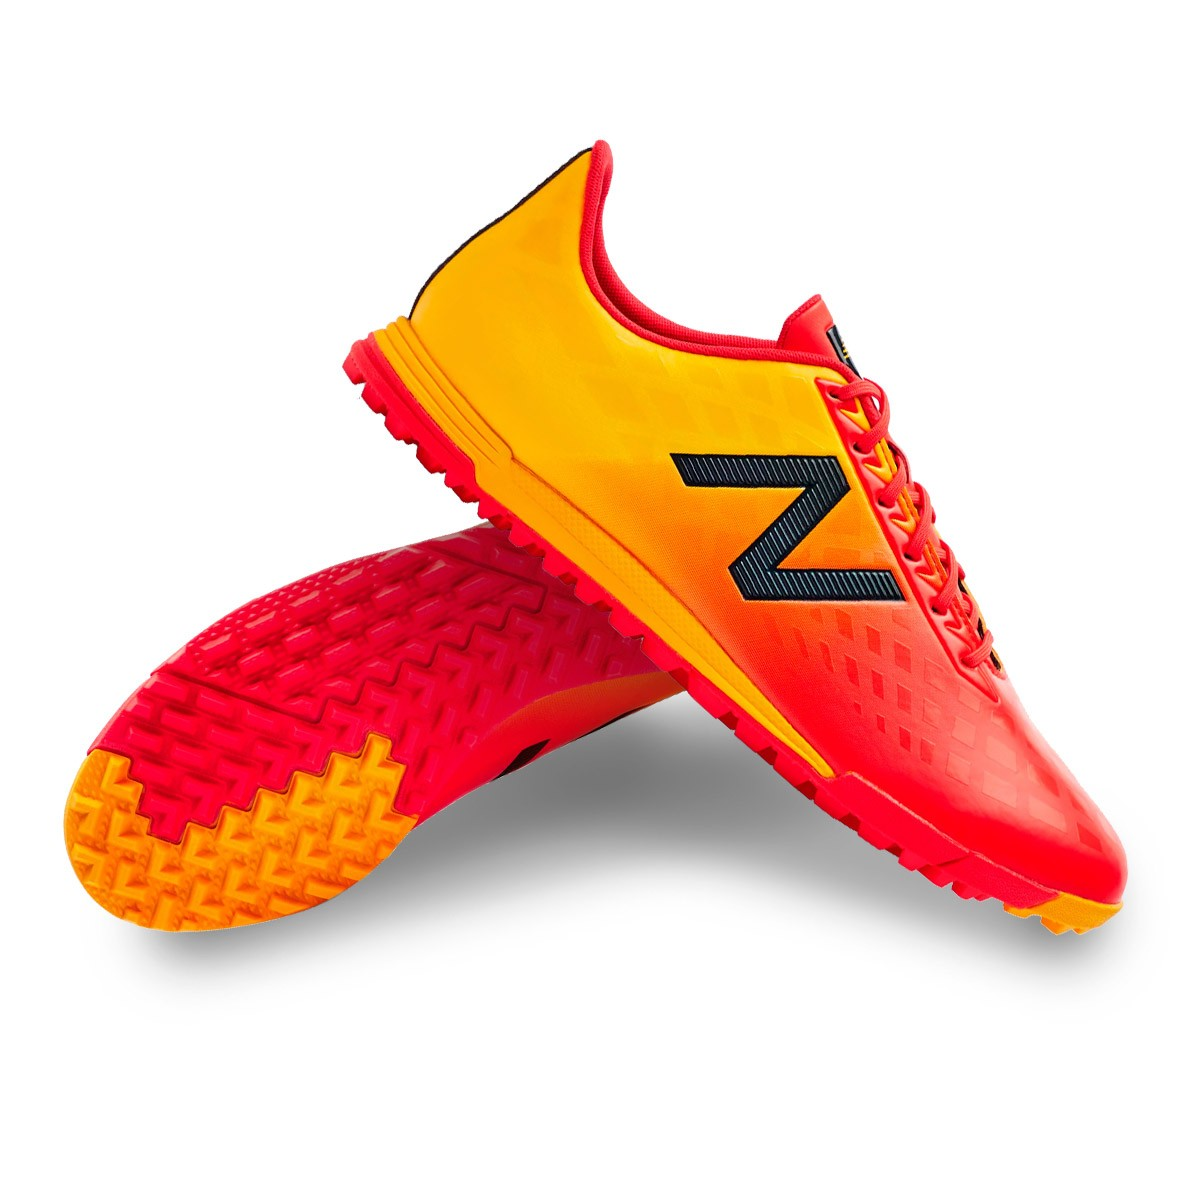 83143be99 Football Boot New Balance Furon 4.0 Dispatch Turf Flame - Tienda de fútbol  Fútbol Emotion